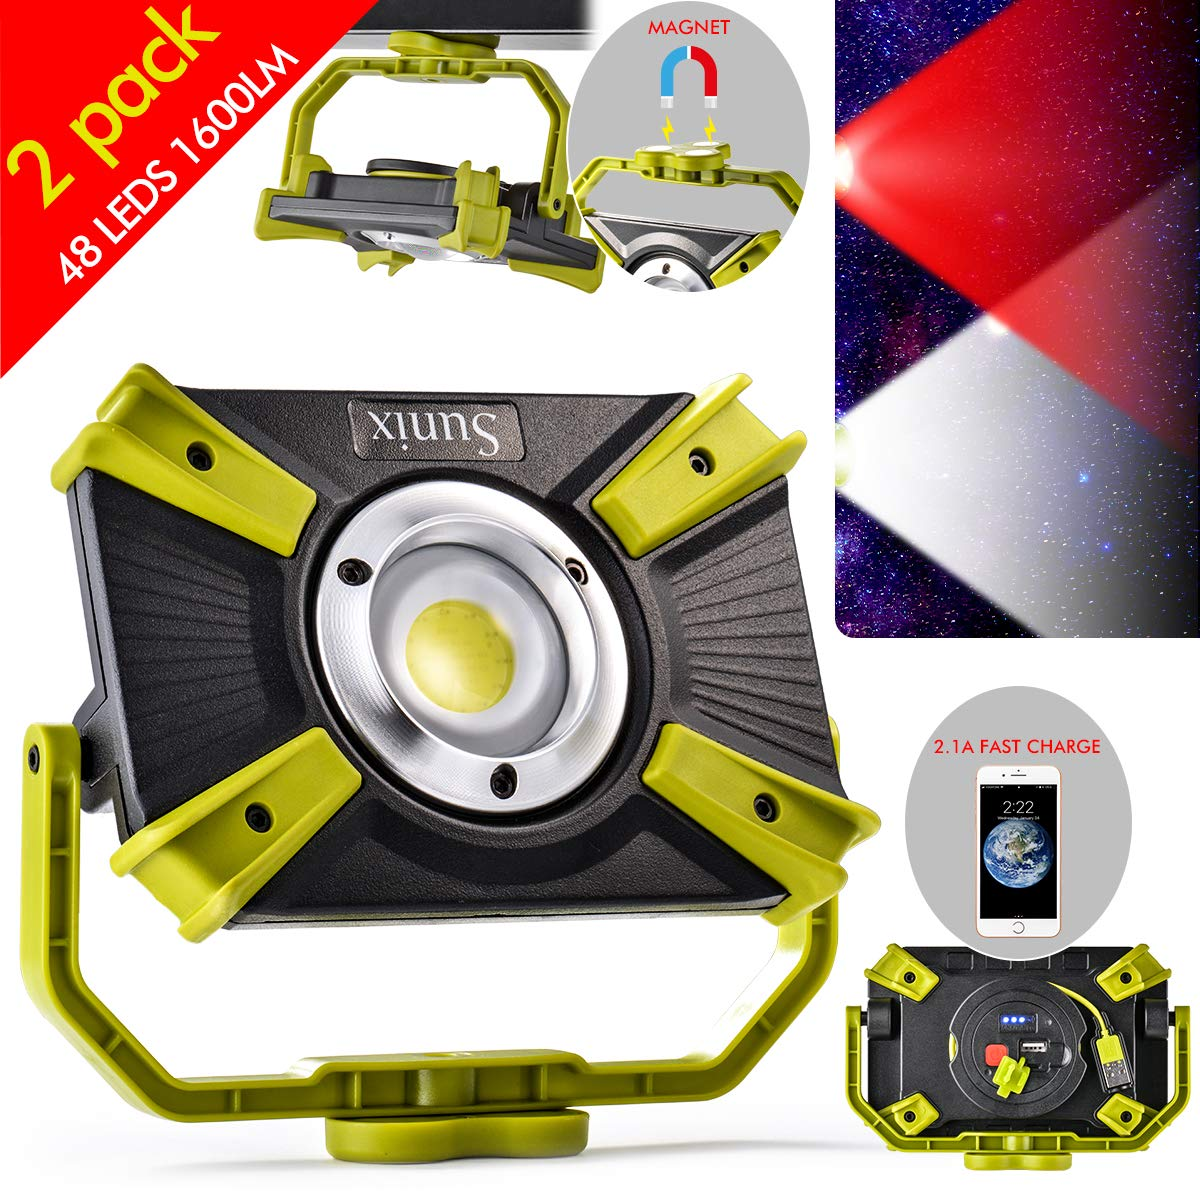 LED Work Light Magnetic Base Rechargeable 20W 1600LM SOS Mode 2.1A Fast Charging Waterproof Spotlights Outdoor Camping Emergency Floodlights For Truck Workshop Construction Site 2 Packs